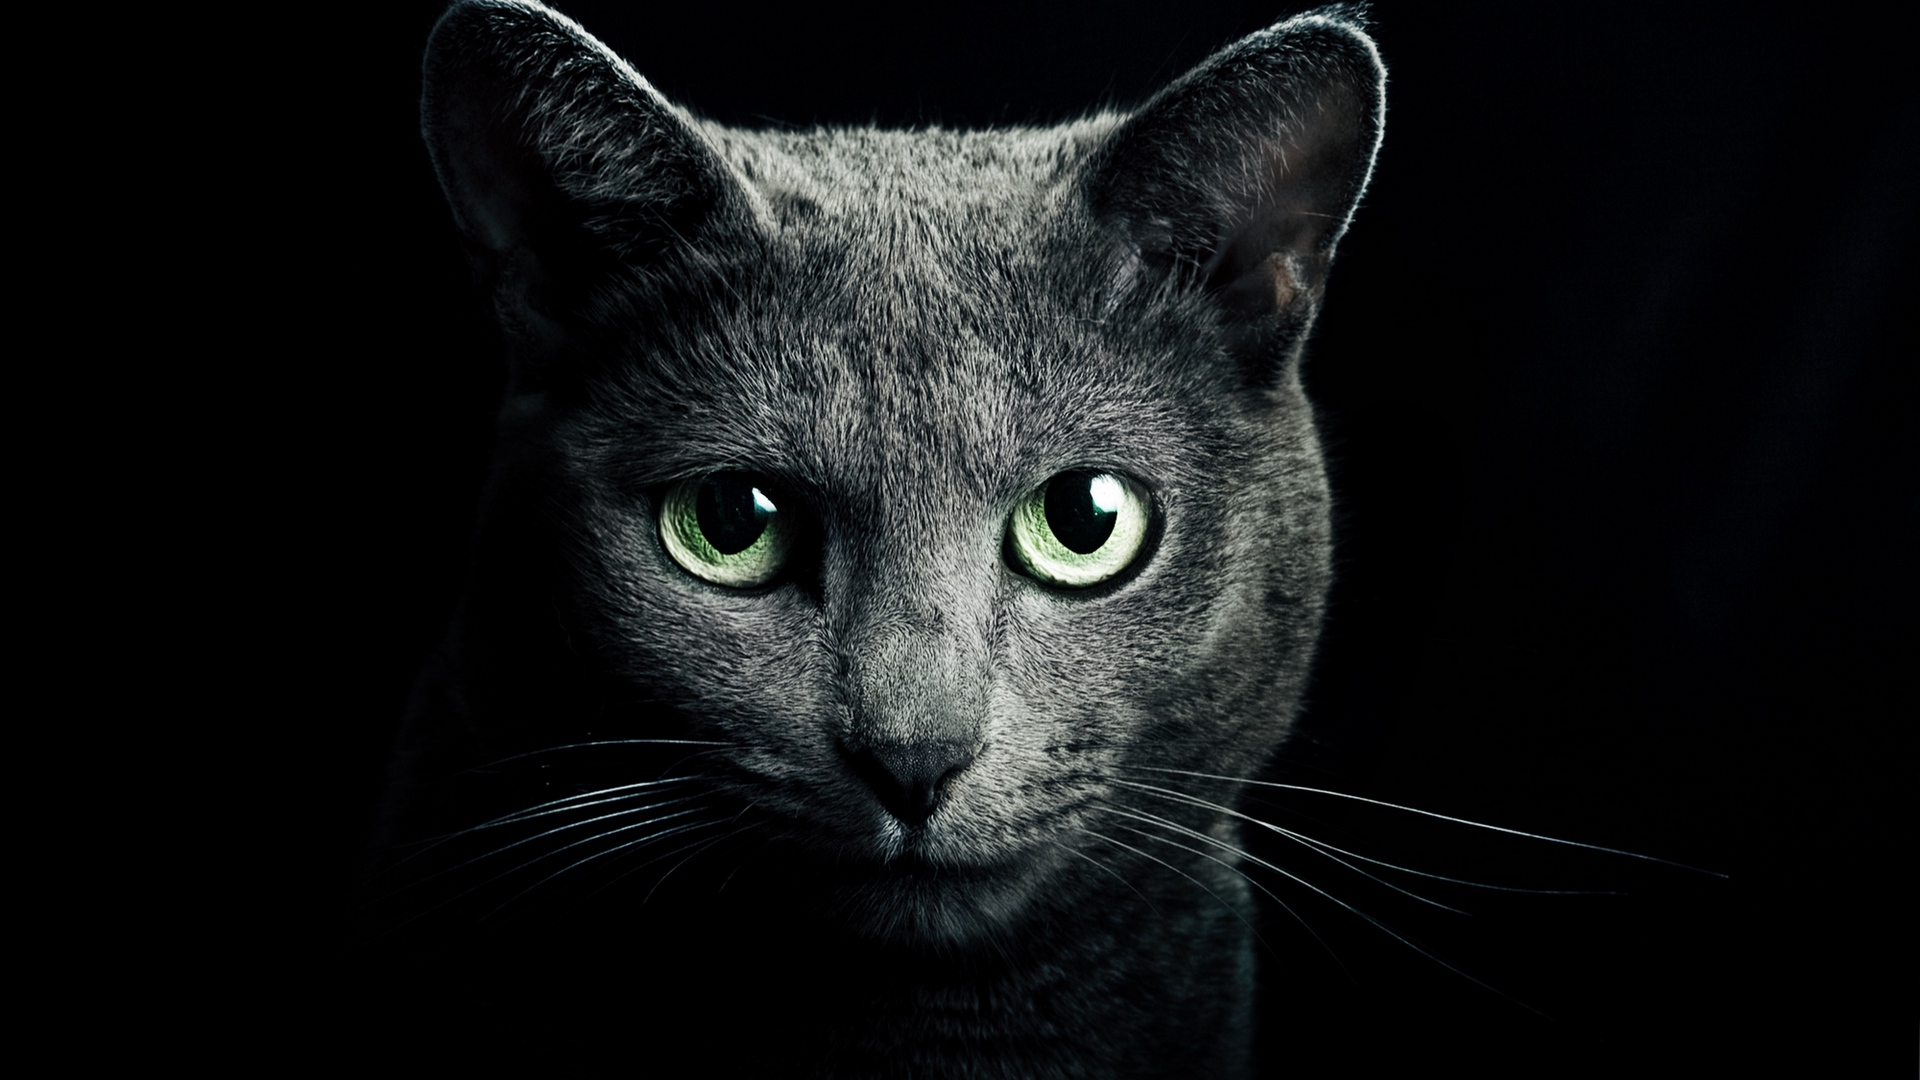 Cute Cat images for Mobile 3